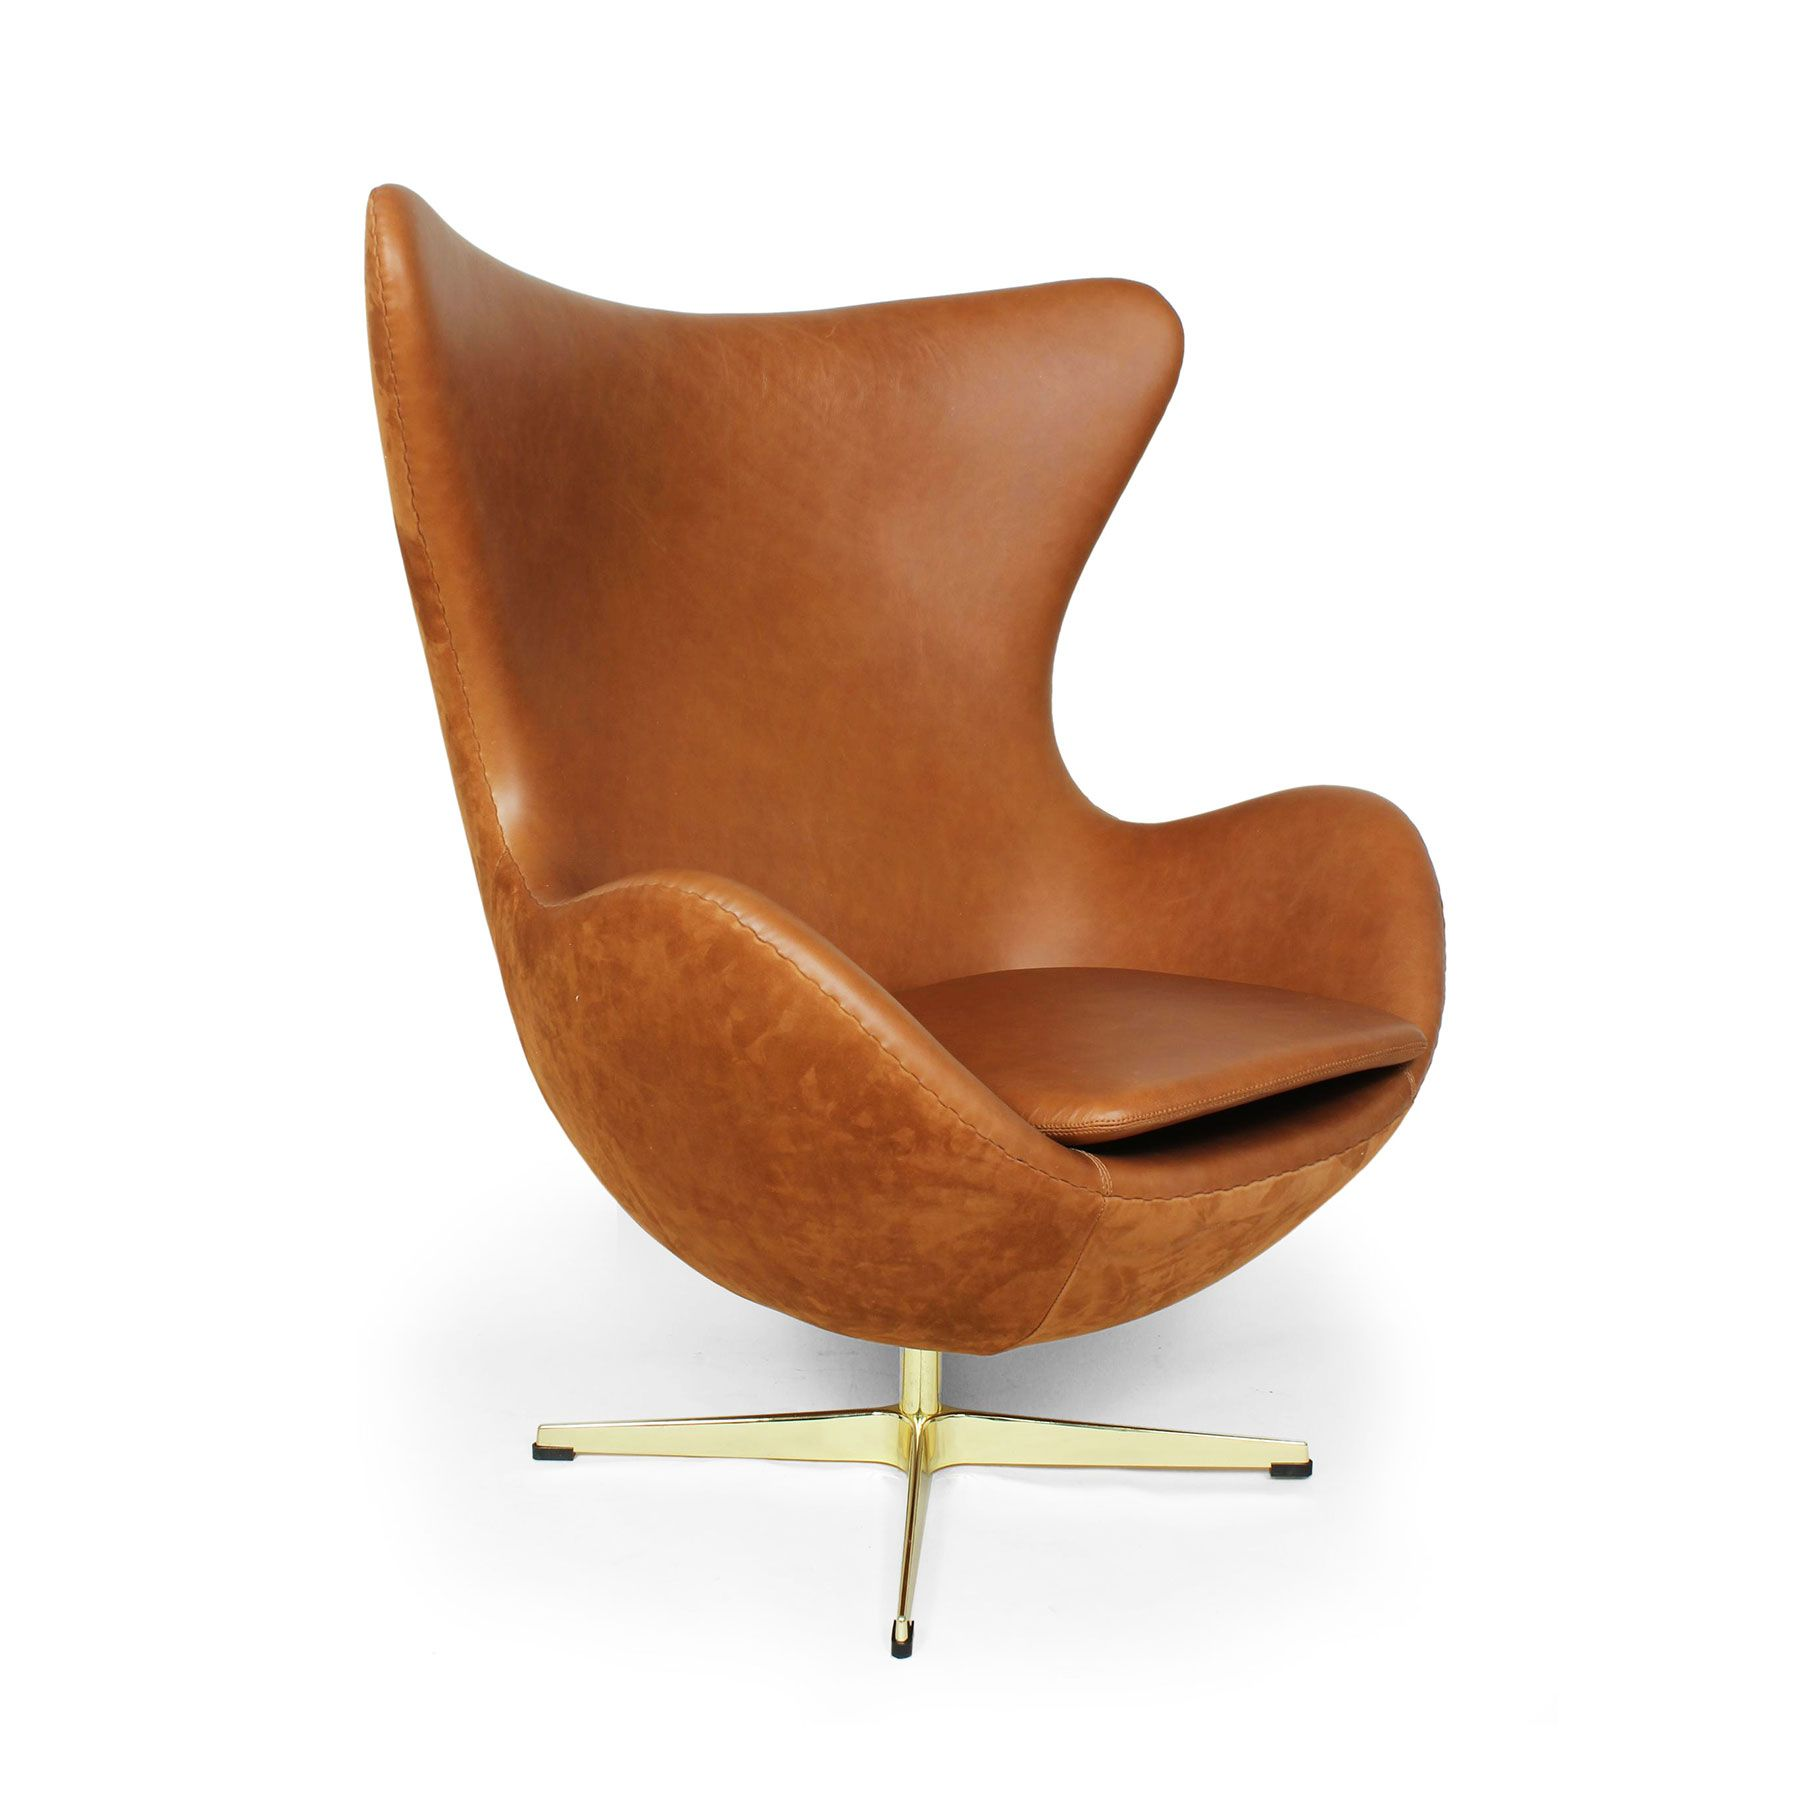 Furniture and Décor for the Modern Lifestyle Egg chair